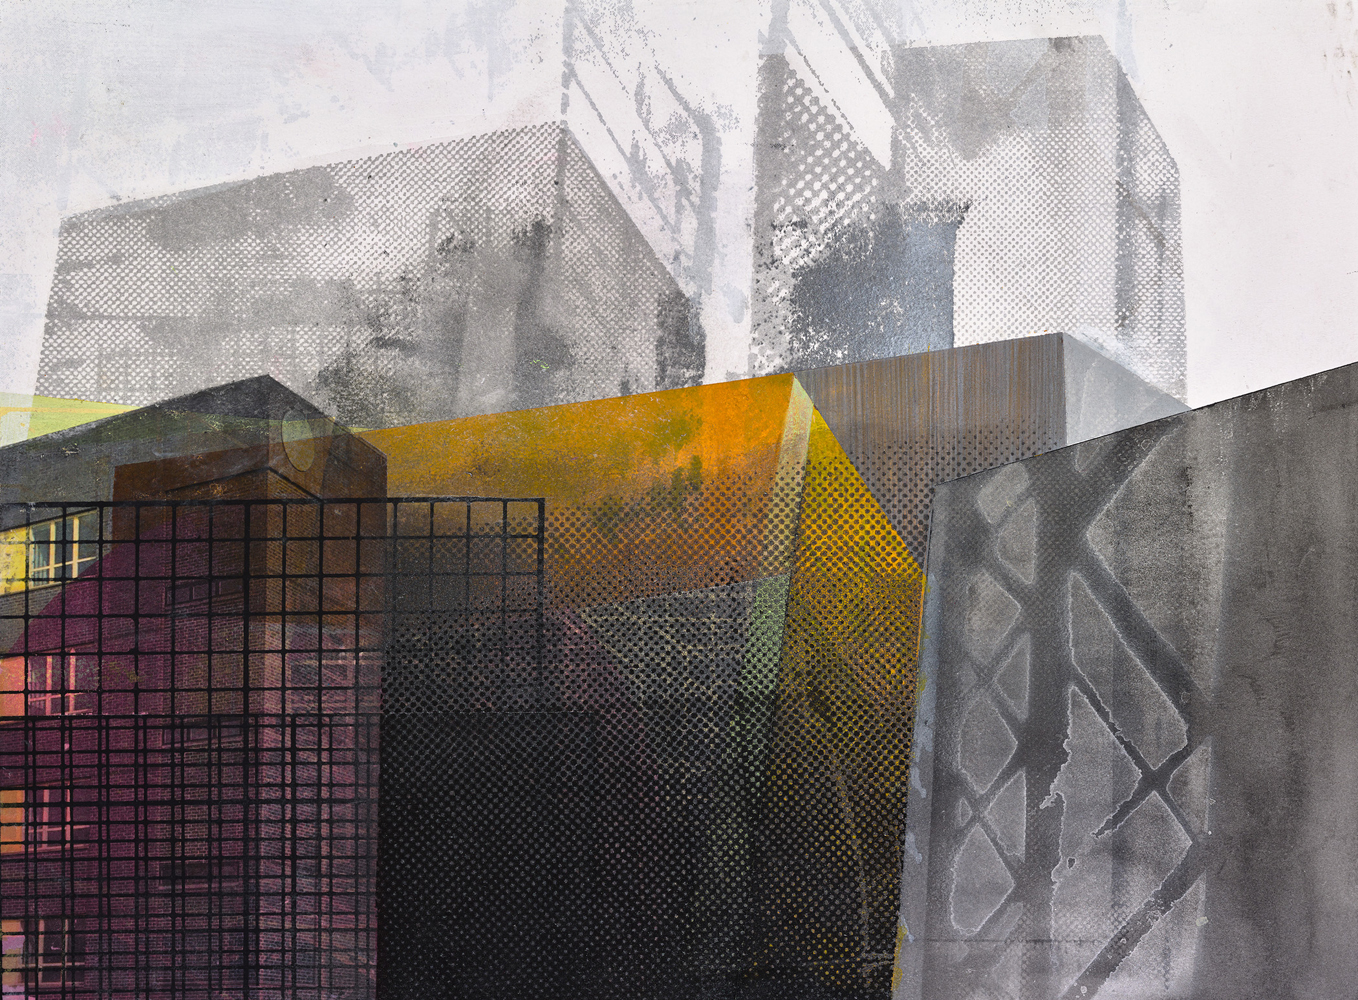 Amanda Knowles, Street View I, 2020, screen print, graphite, acrylic on paper, 11 x 15 inches, $600.